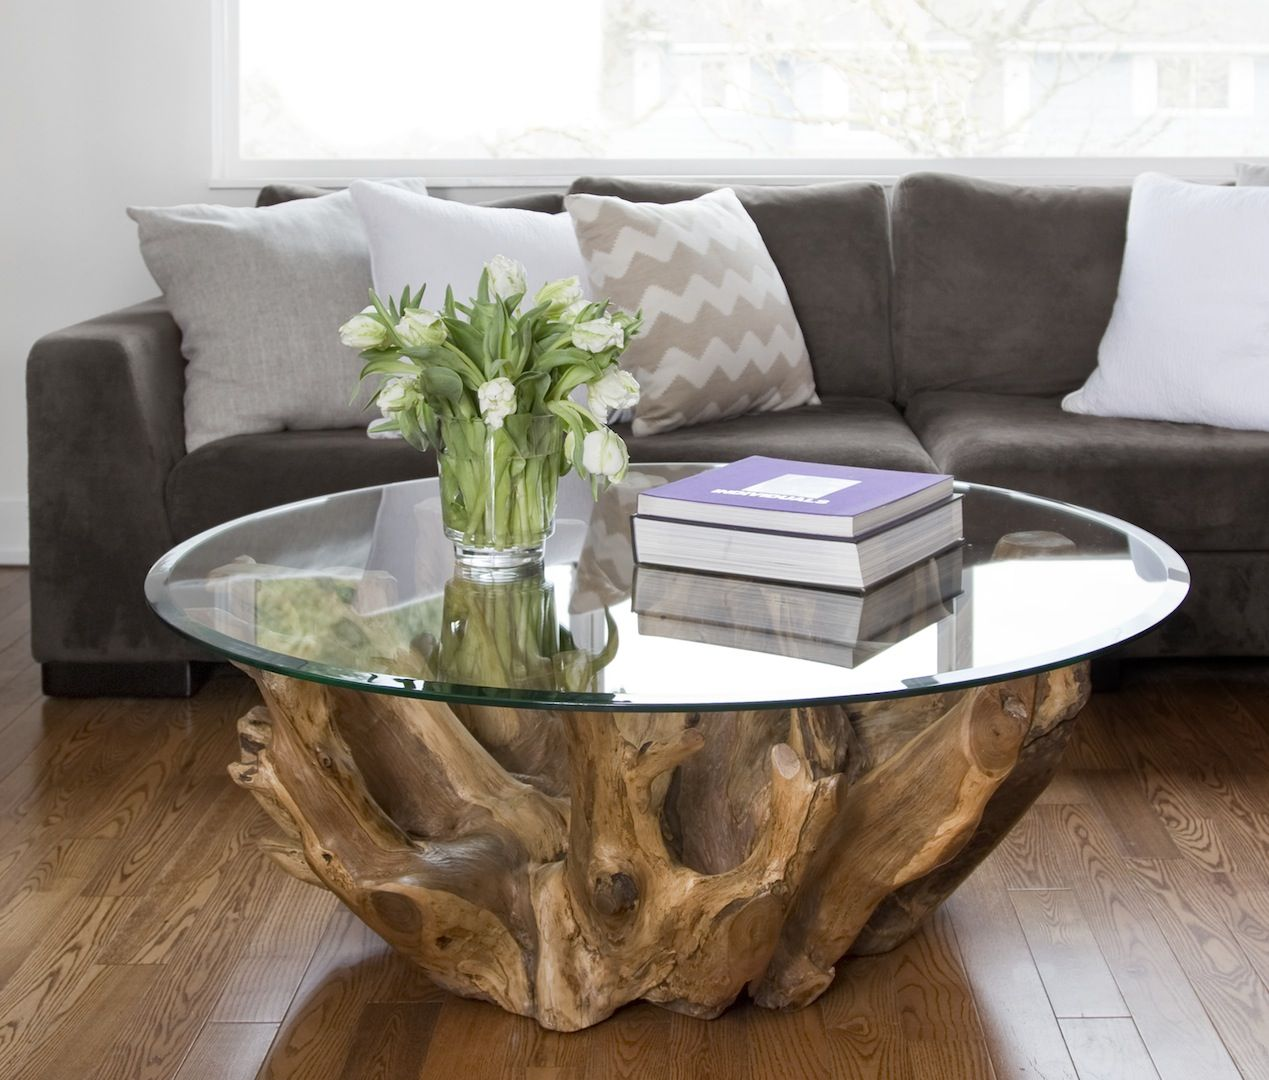 Rustic One Of A Kind Natural Teak Wood Slab Coffee Table: Root Coffe Setting 1